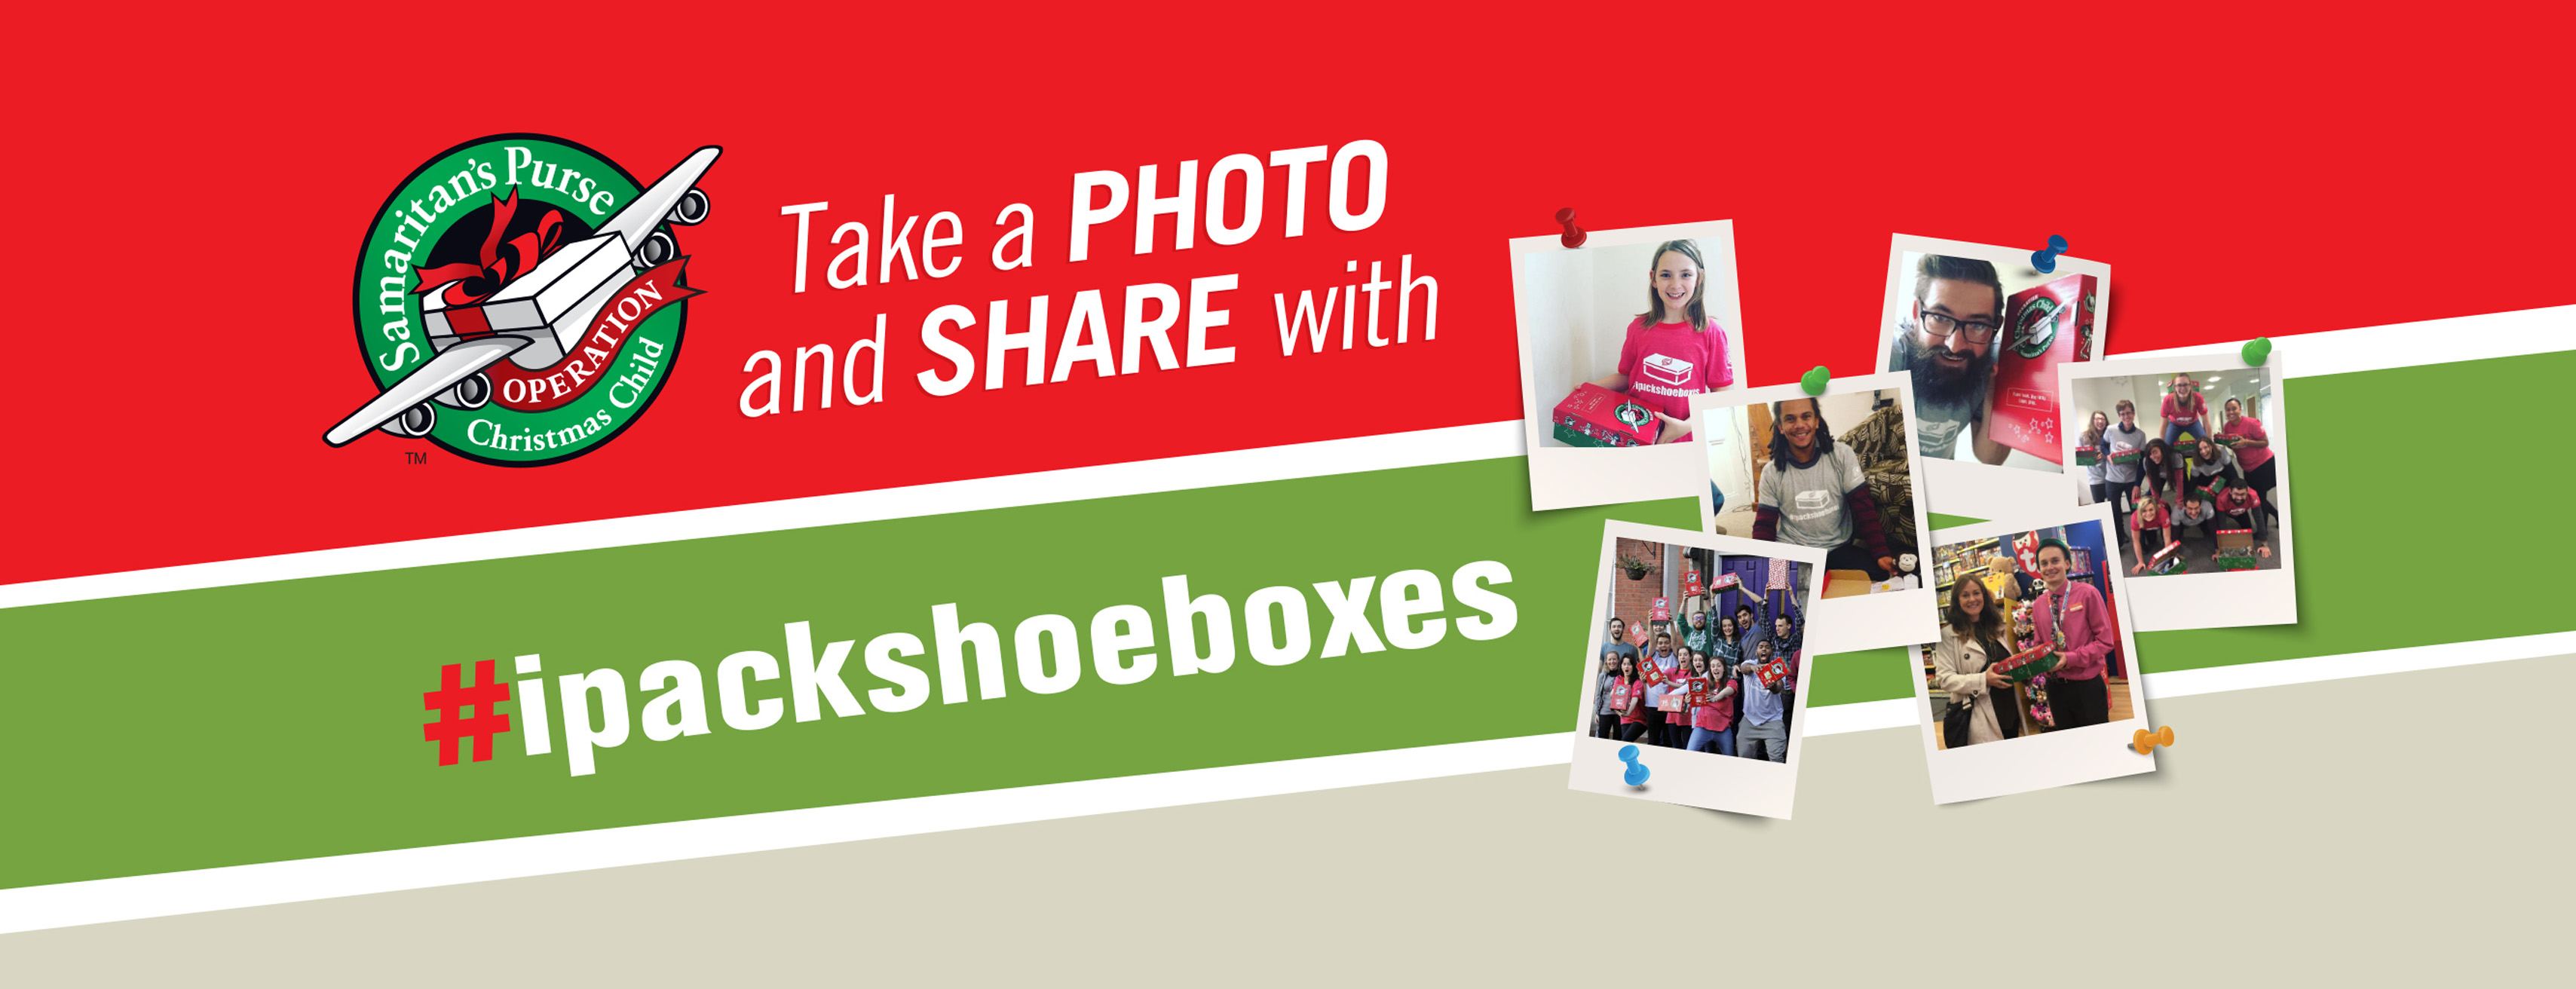 Take a photo and share with #ipackshoeboxes